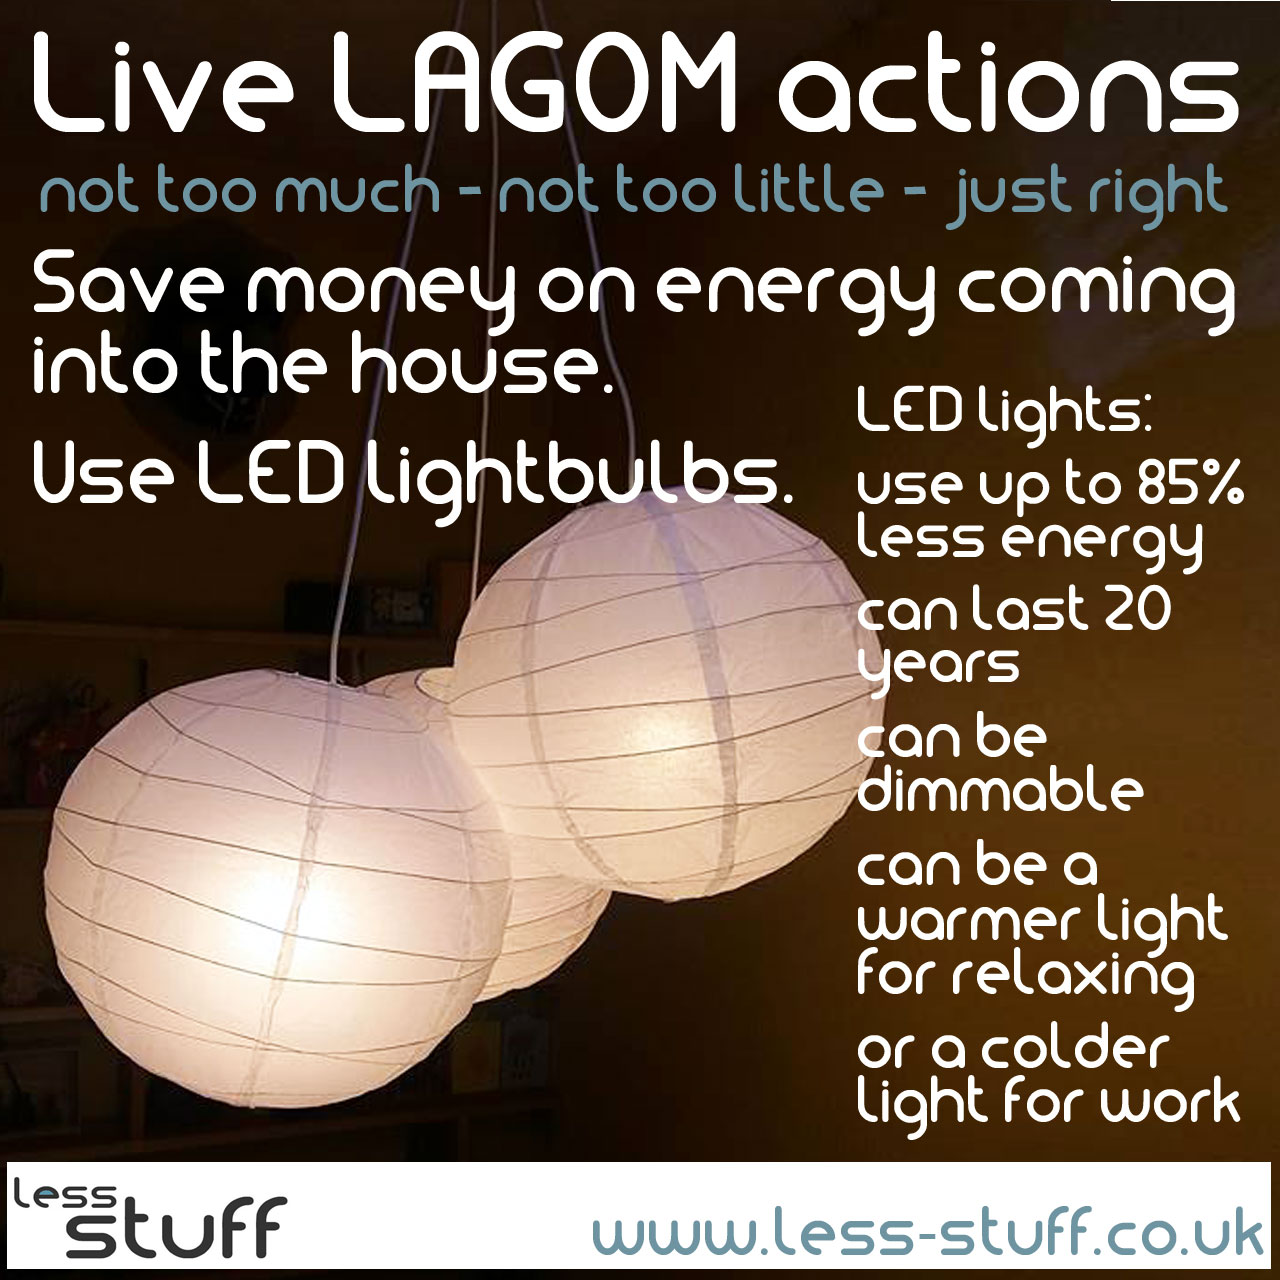 live lagom led lightbulbs save money